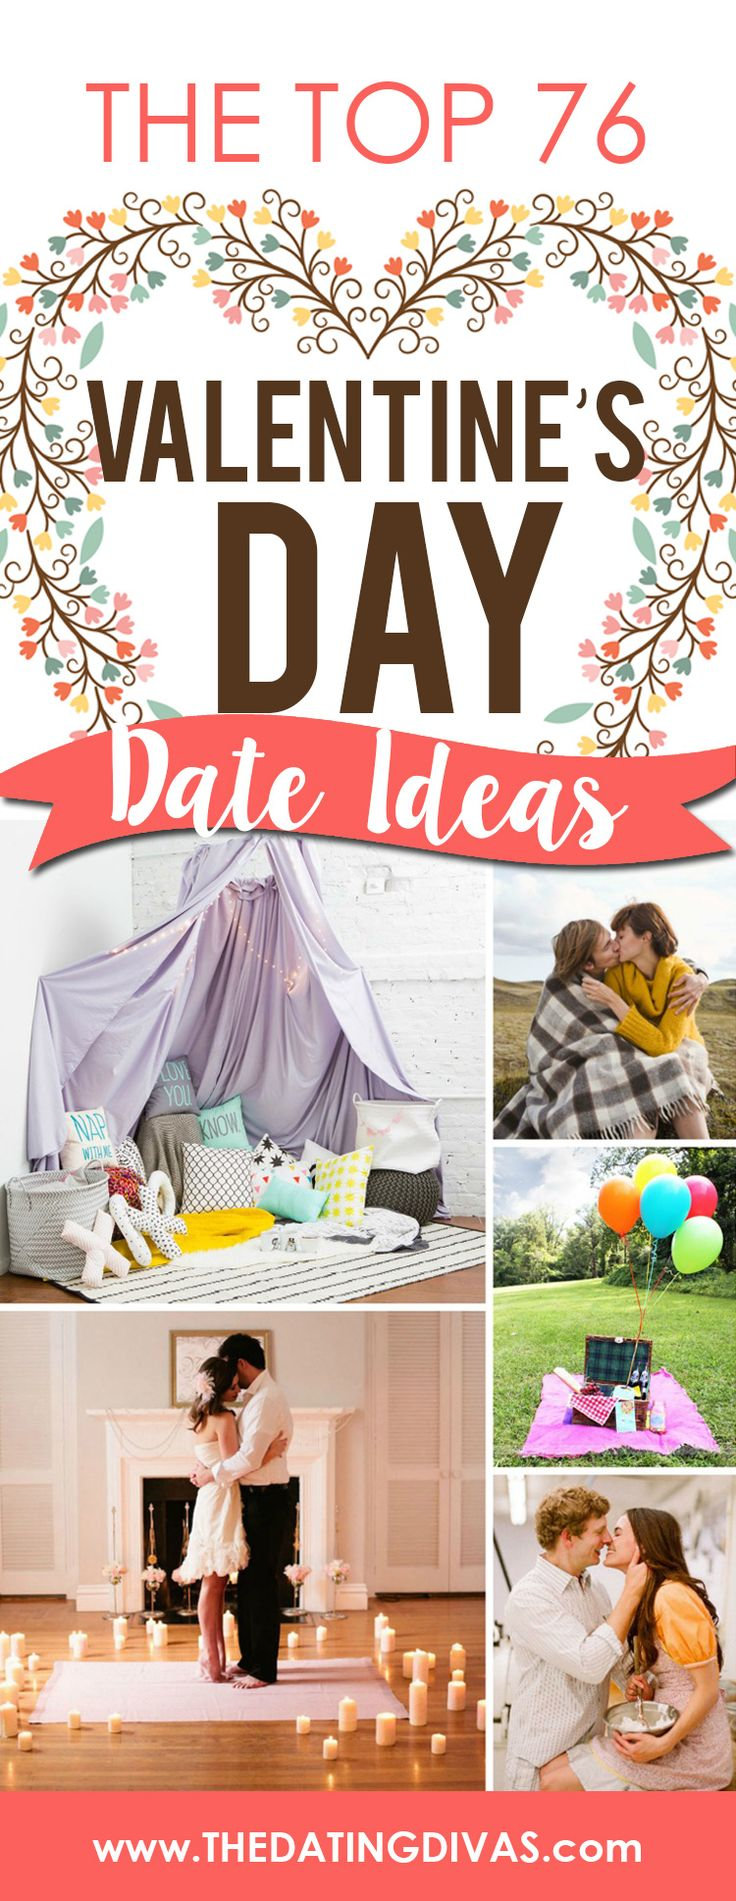 Valentines day date ideas in Melbourne